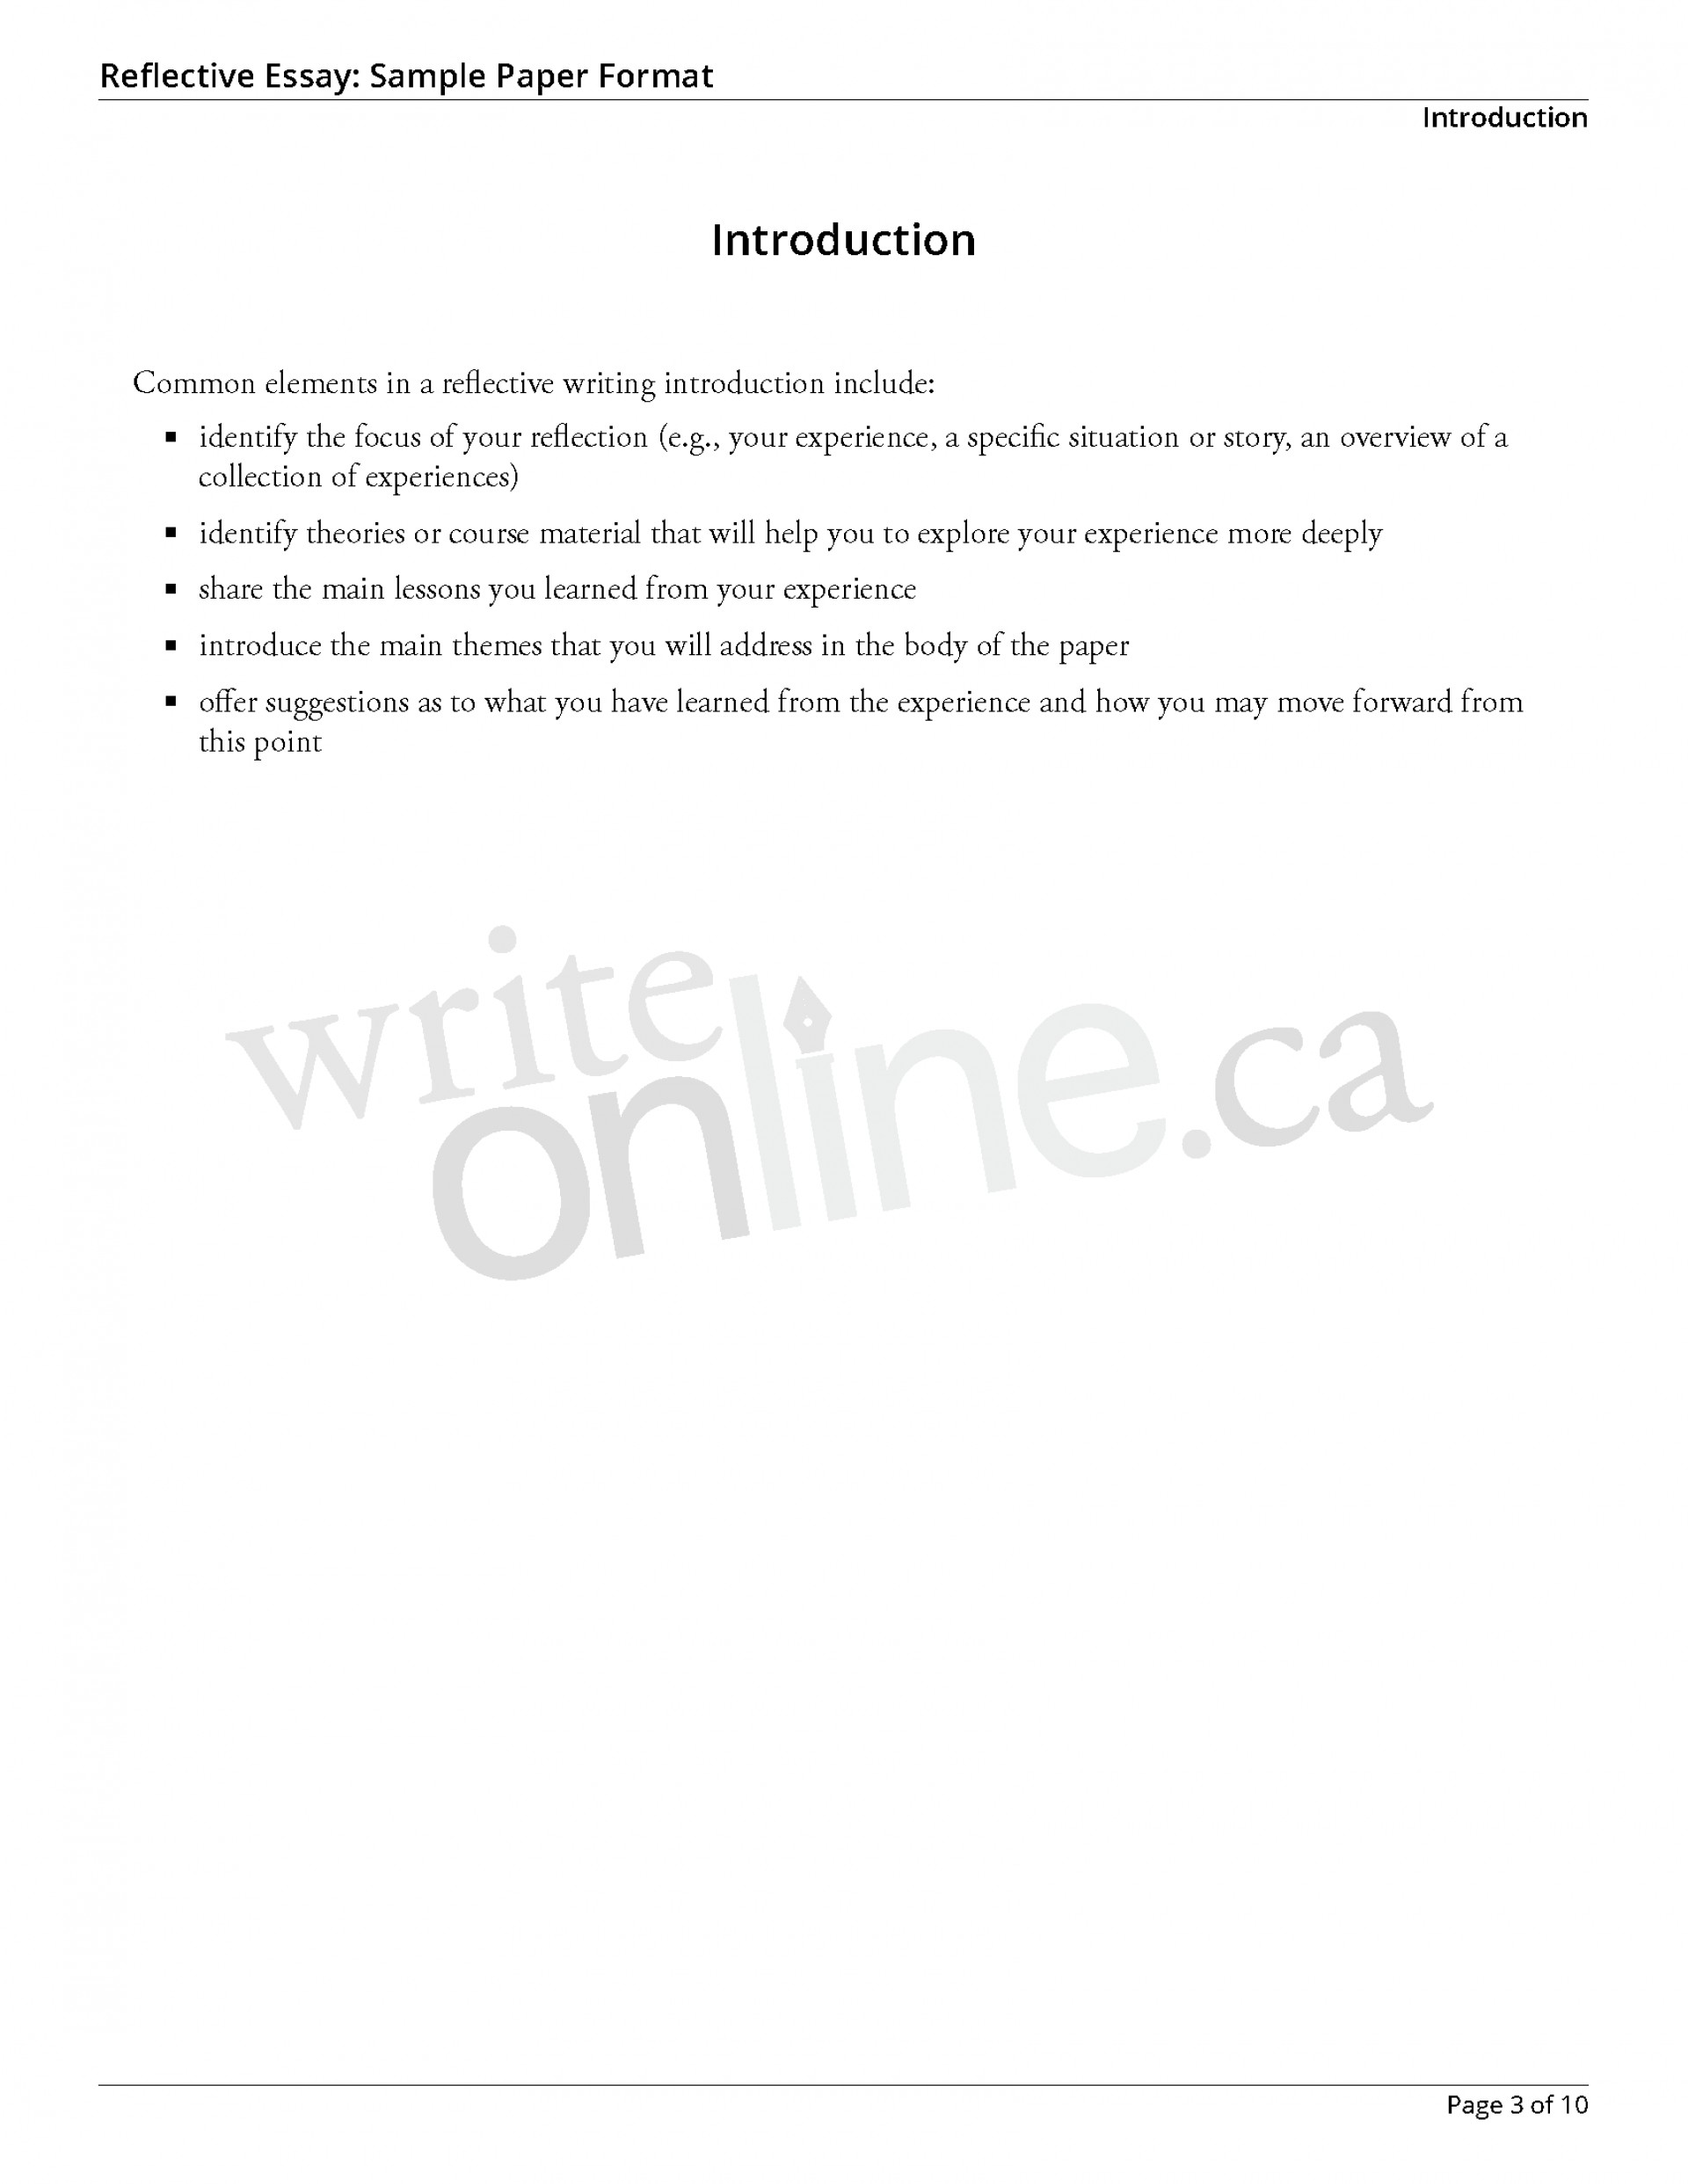 009 Reflectiveessay Sample Page 3 Essay Example How To Start Reflective Surprising A Introduction Write An 1920